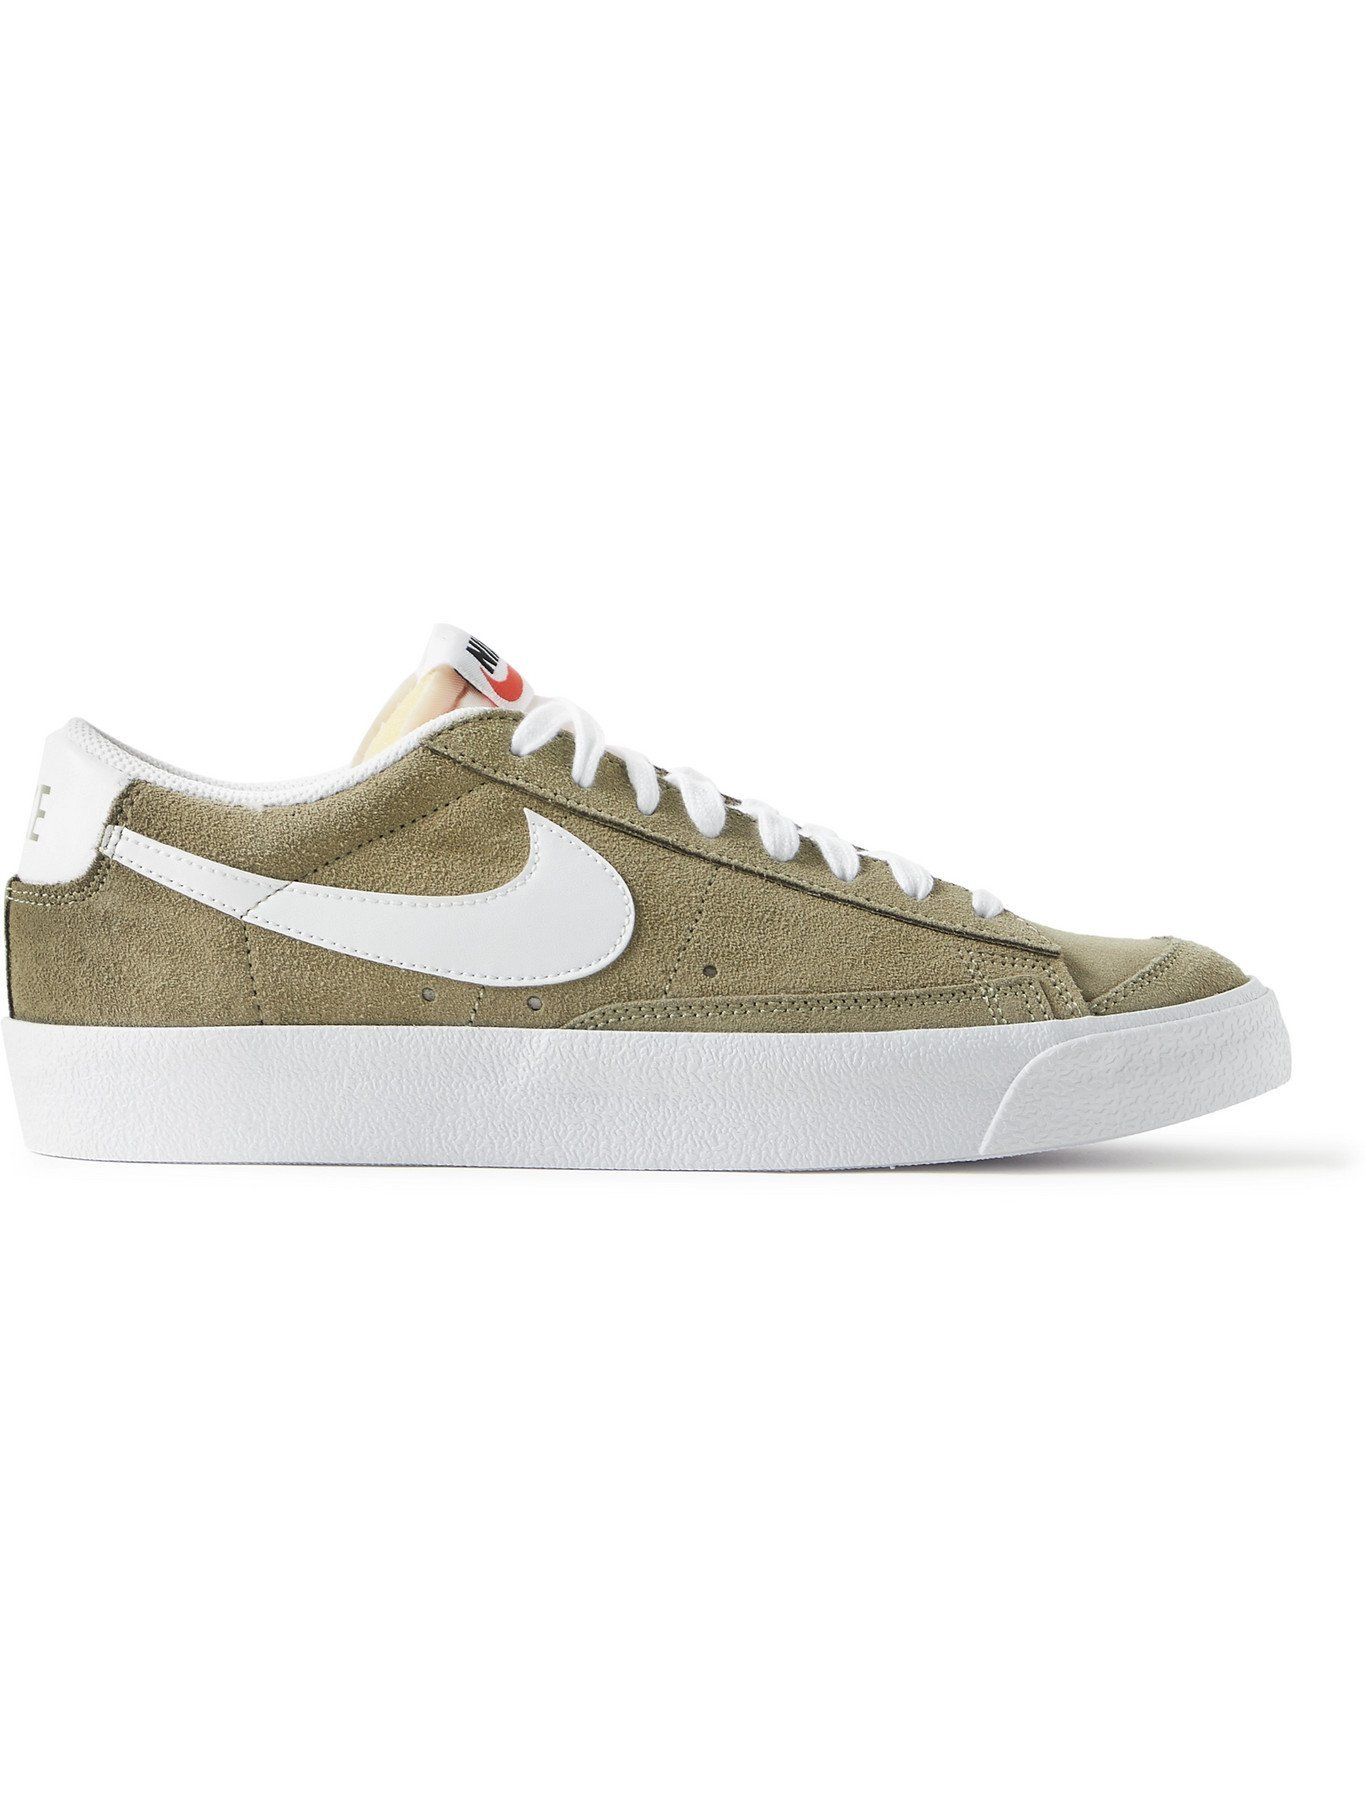 NIKE - Blazer Low '77 Leather-Trimmed Suede Sneakers - Green Nike